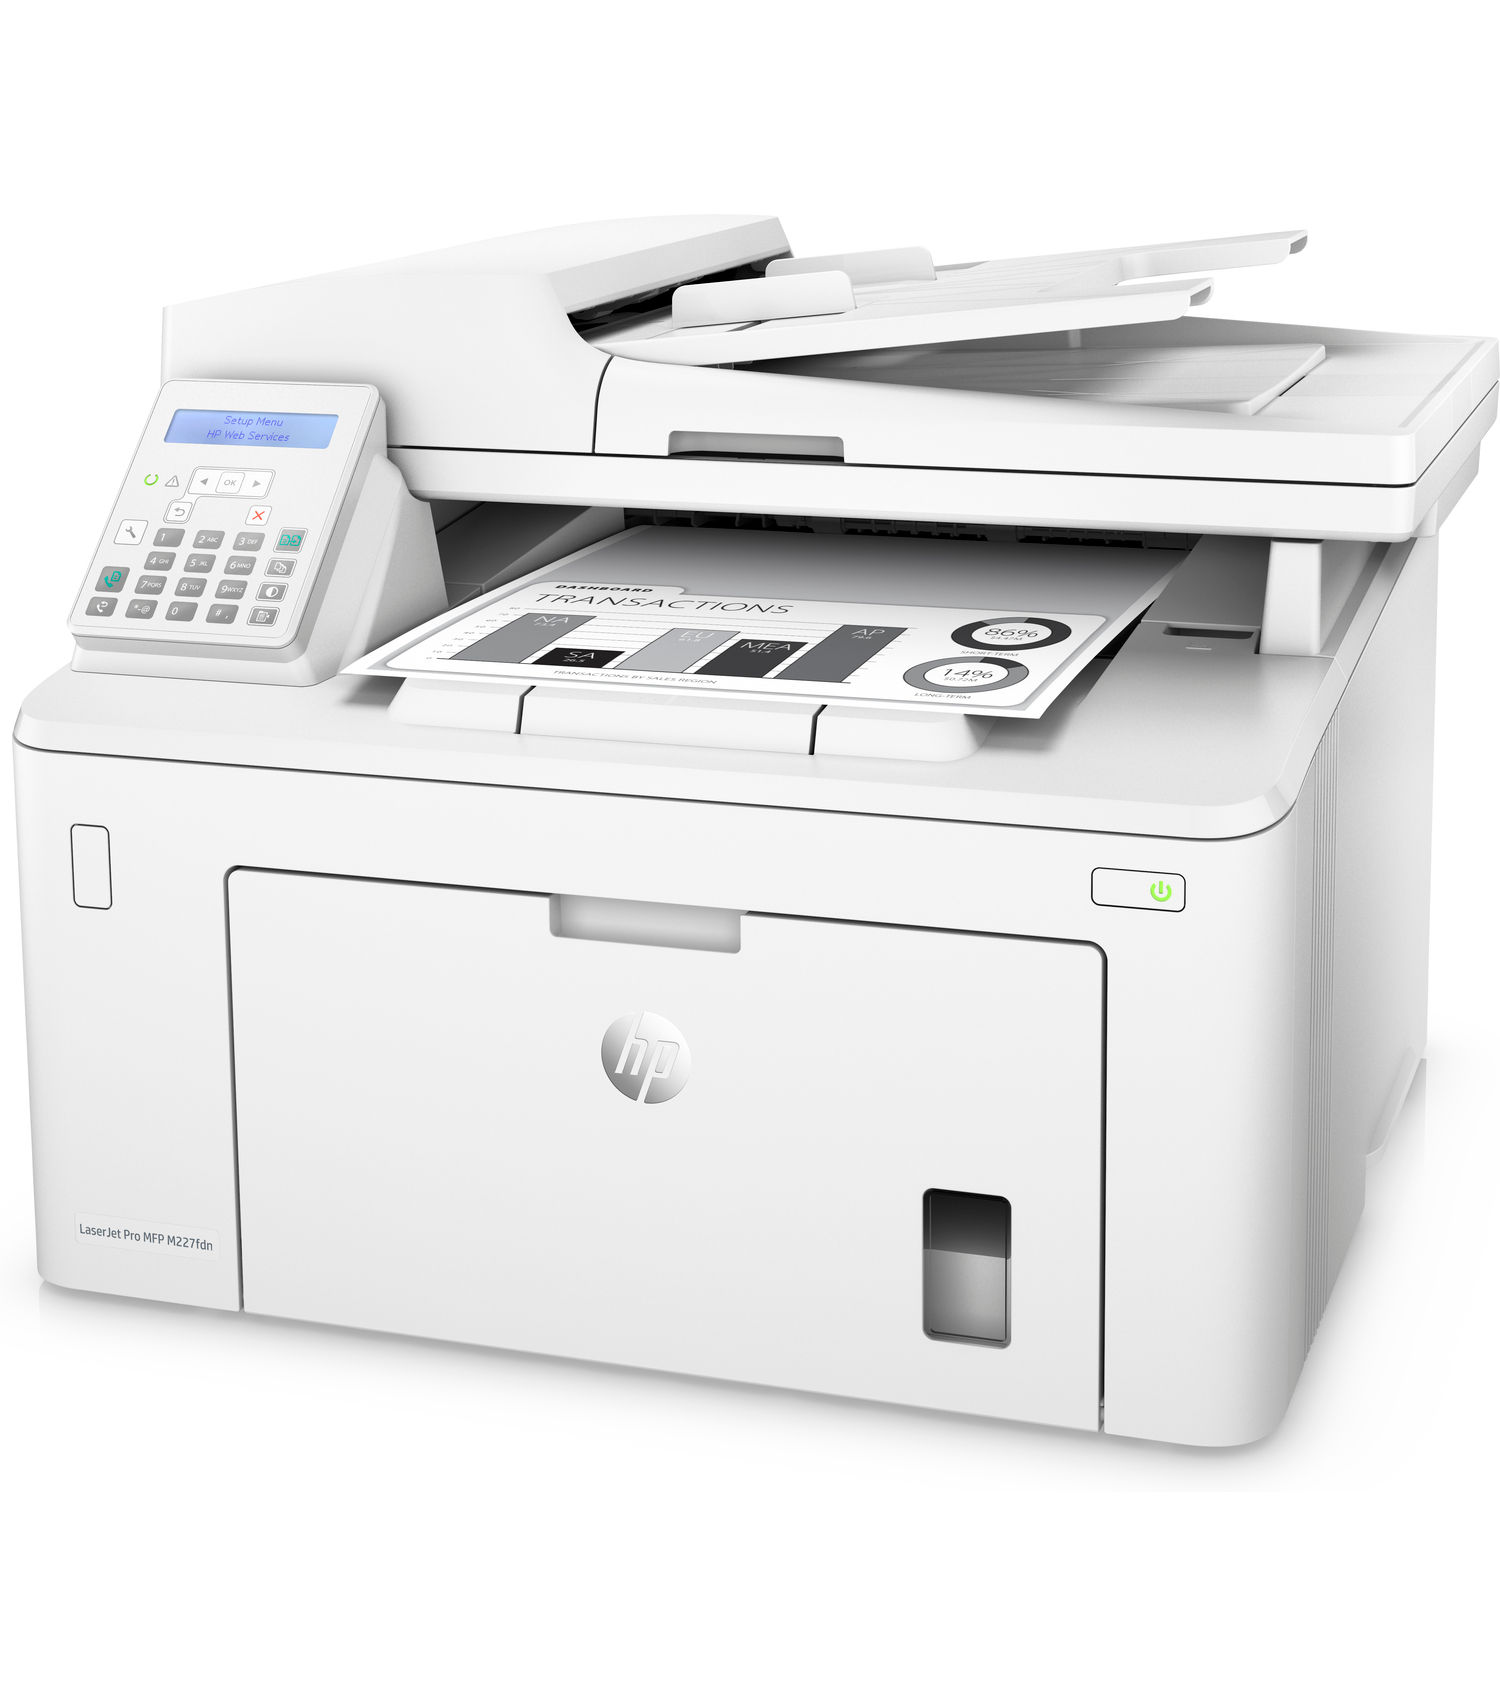 HP LASERJET M1200 WINDOWS 10 DOWNLOAD DRIVER